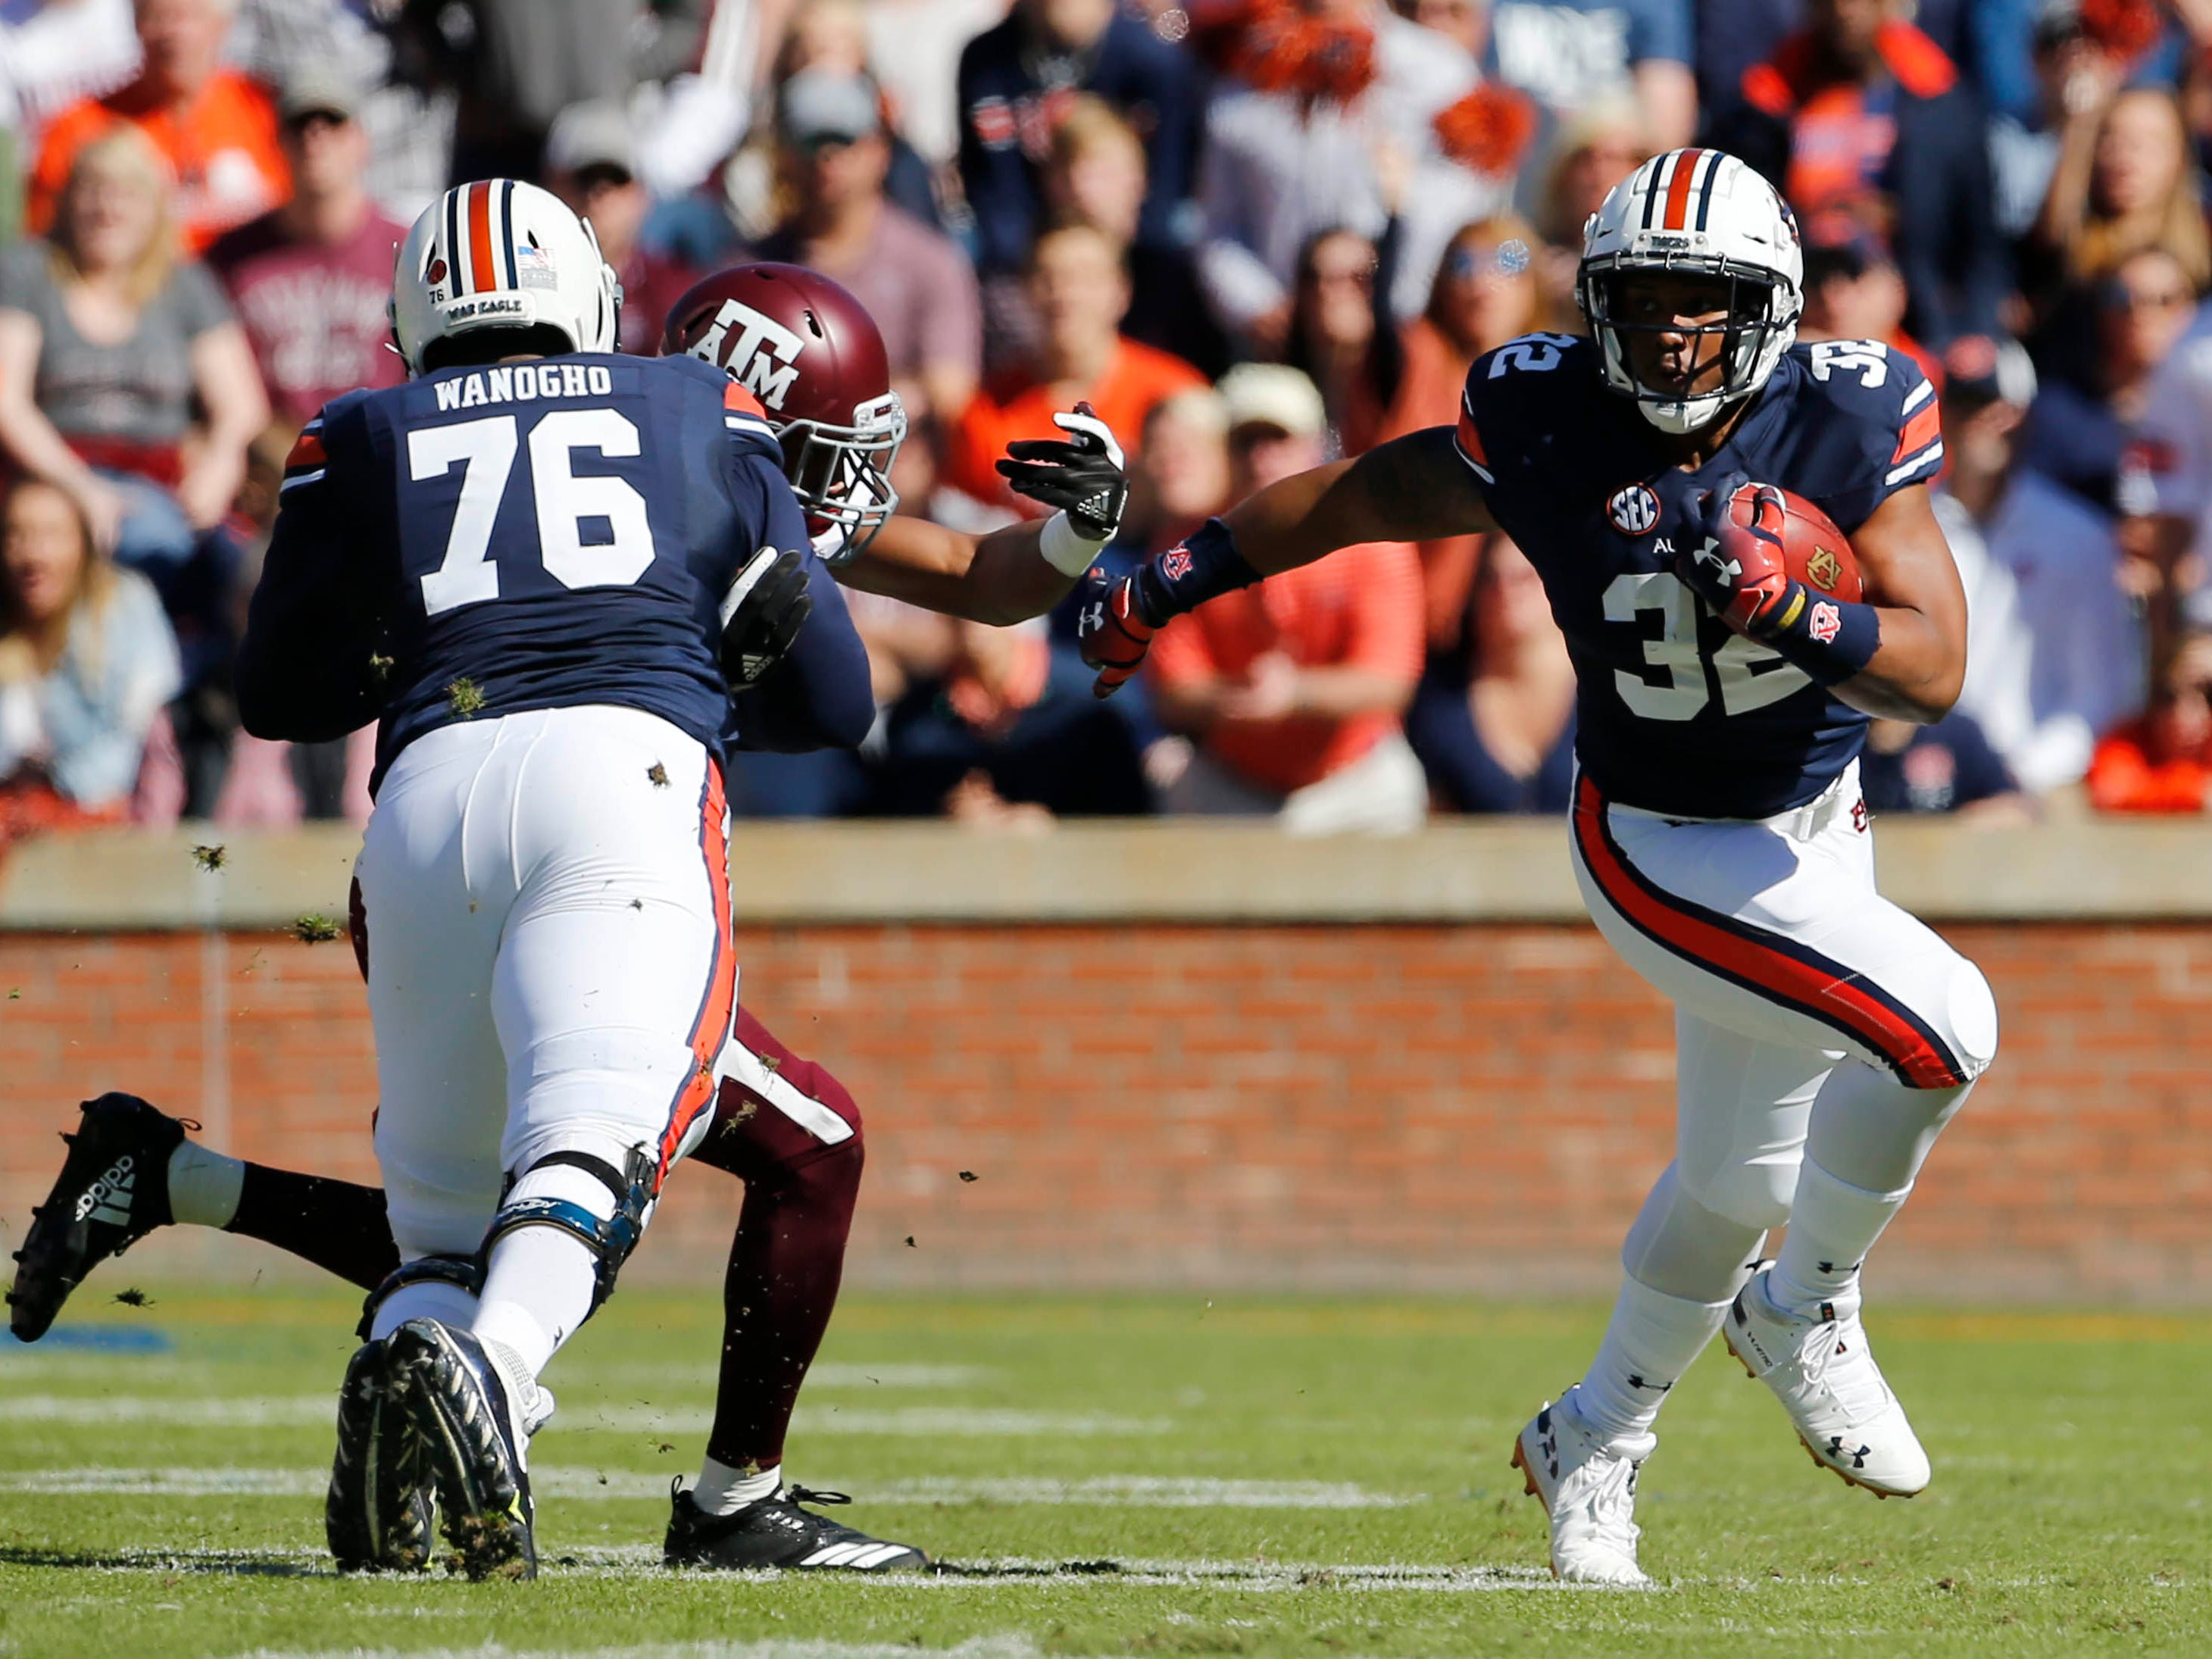 Auburn Tigers running back Malik Miller gets a good block from offensive lineman Prince Tega Wanogho in the first quarter against Texas A&M at Jordan-Hare Stadium.